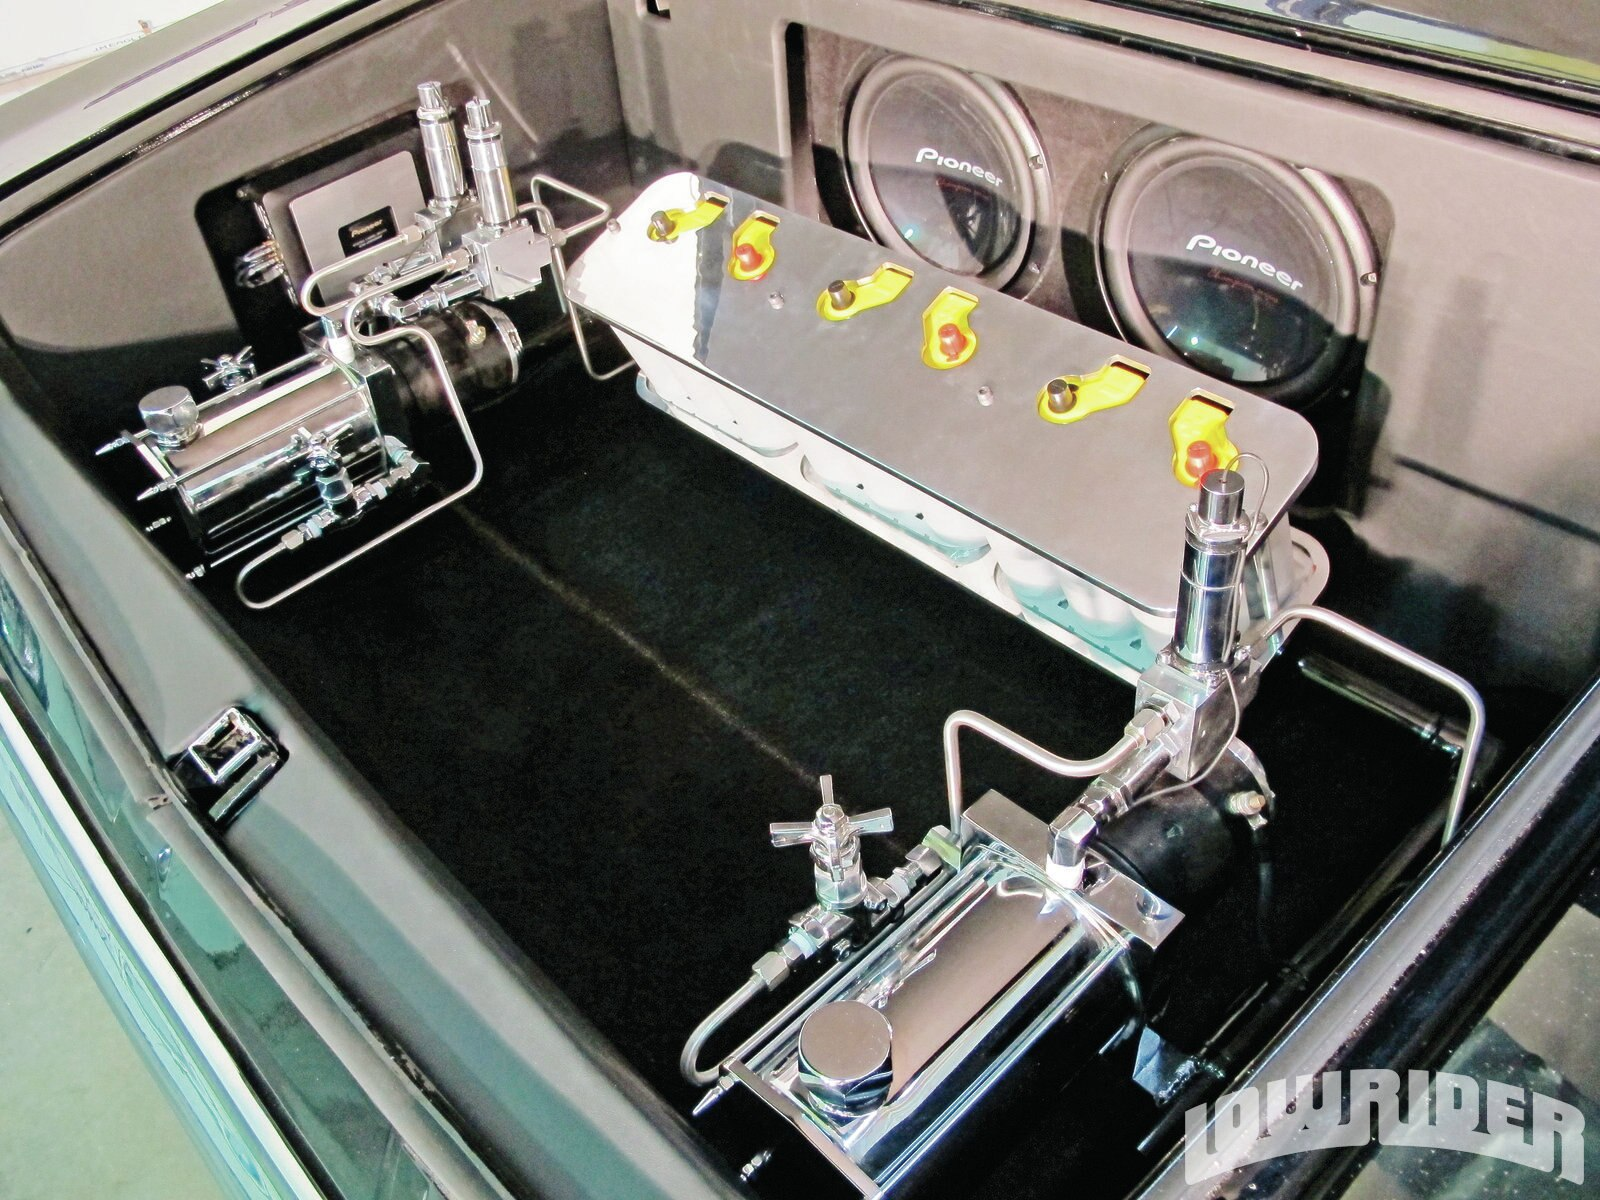 1203-lrmp-26-o-pioneer-equipment-trunk-compartment-custom-trunk-setup1